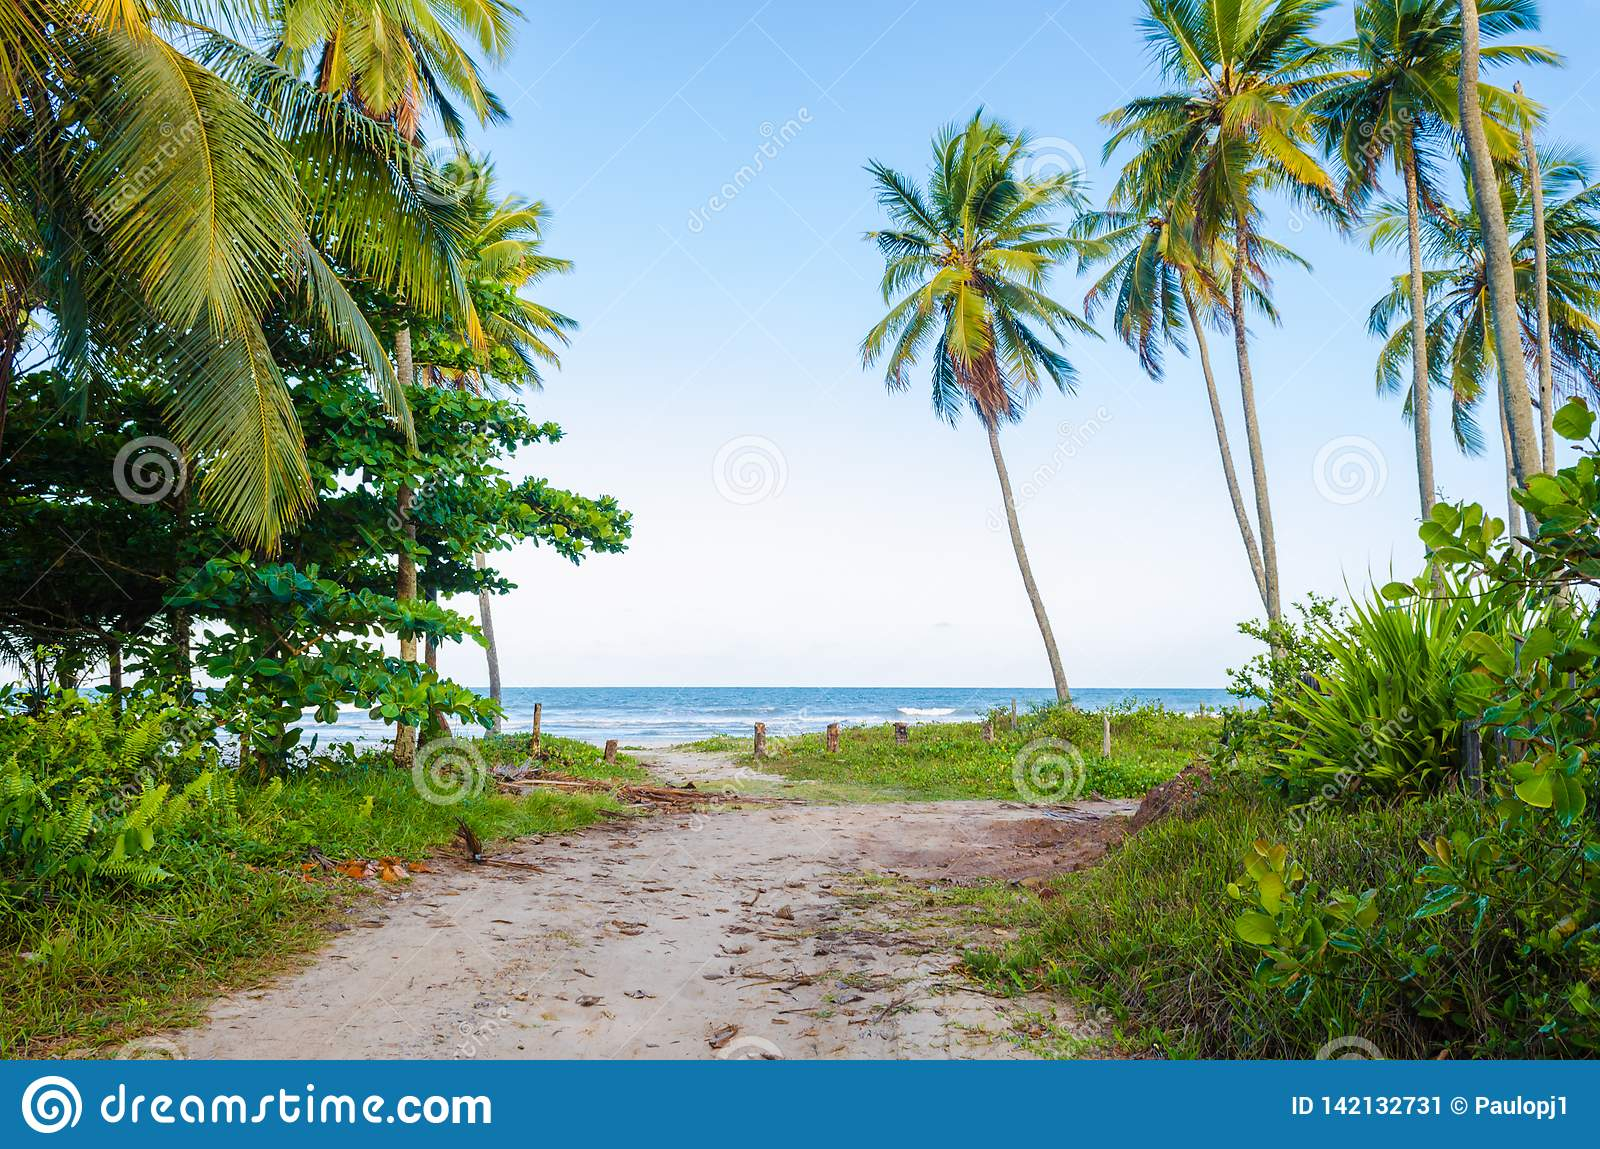 View of arrival on the beach with blue sky, sea on the horizon, coconut trees, green vegetation and a small dirt road.